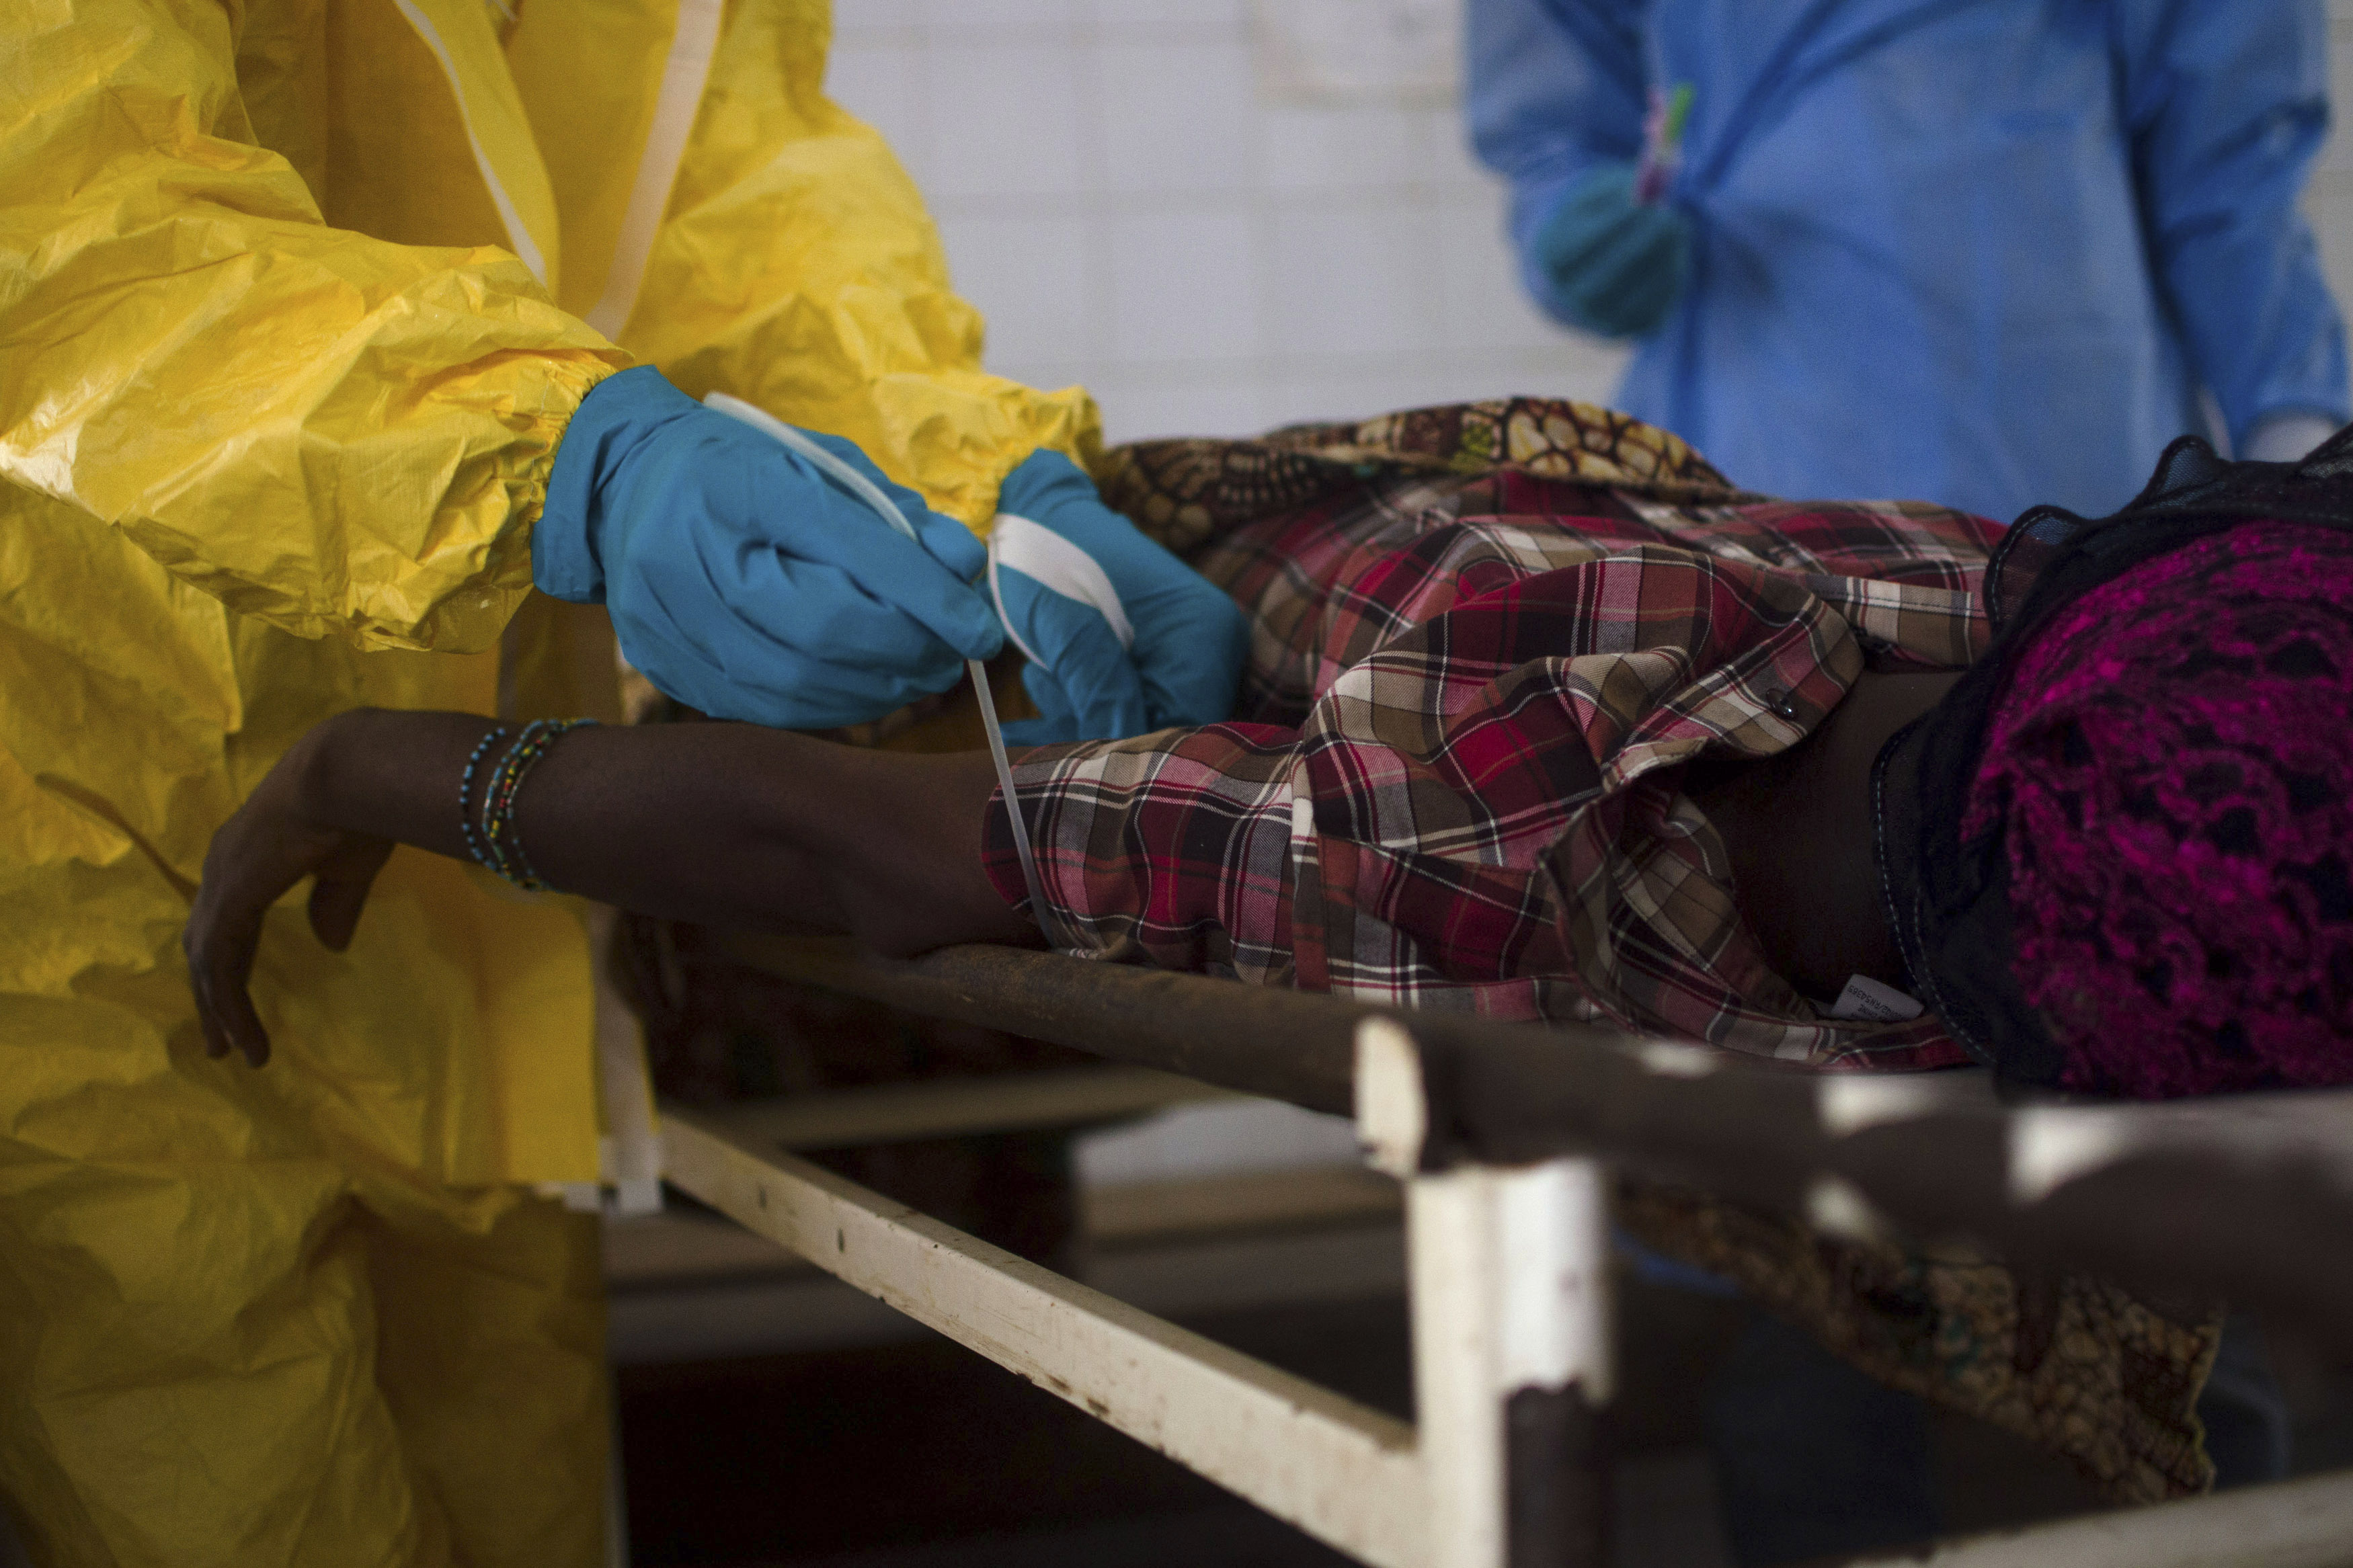 Medical staff take a blood sample from a suspected Ebola patient at the government hospital in Kenema, Sierra Leone, on July 10, 2014